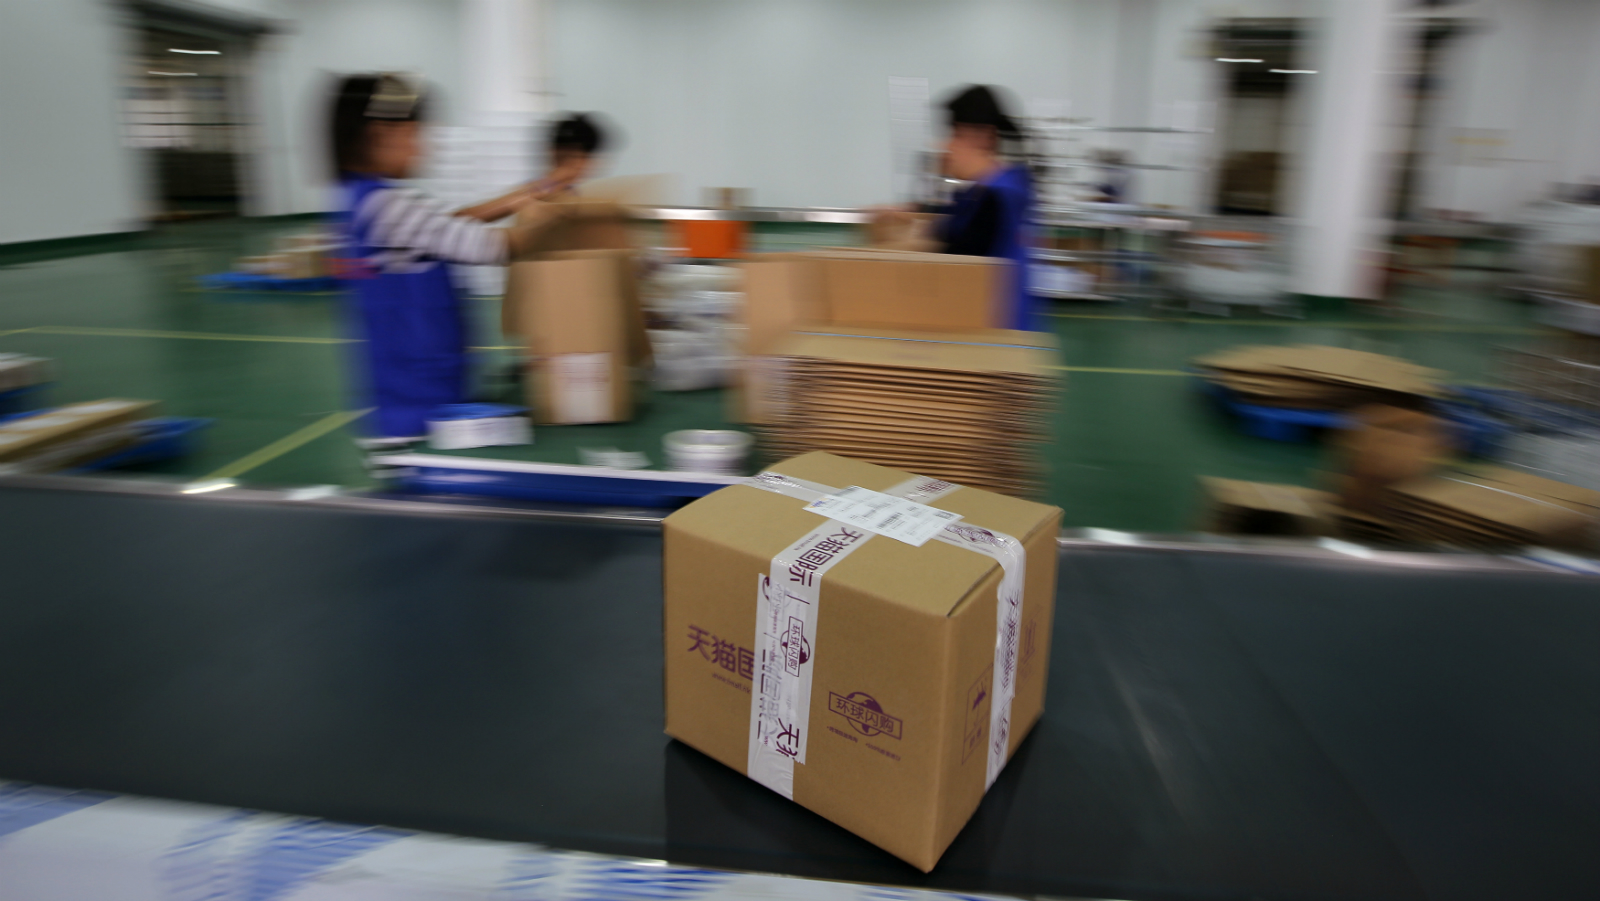 "A box with goods is seen as employees work at an Alibaba Group warehouse on the outskirts of Hangzhou, Zhejiang province October 30, 2014. A trademark spat between Chinese e-commerce giant Alibaba Group Holding Ltd and rival JD.com flared into public view after JD published an Alibaba letter urging publishers to be careful about advertising in promotions for China's annual ""Singles' Day"" spree, the world's largest online shopping day."